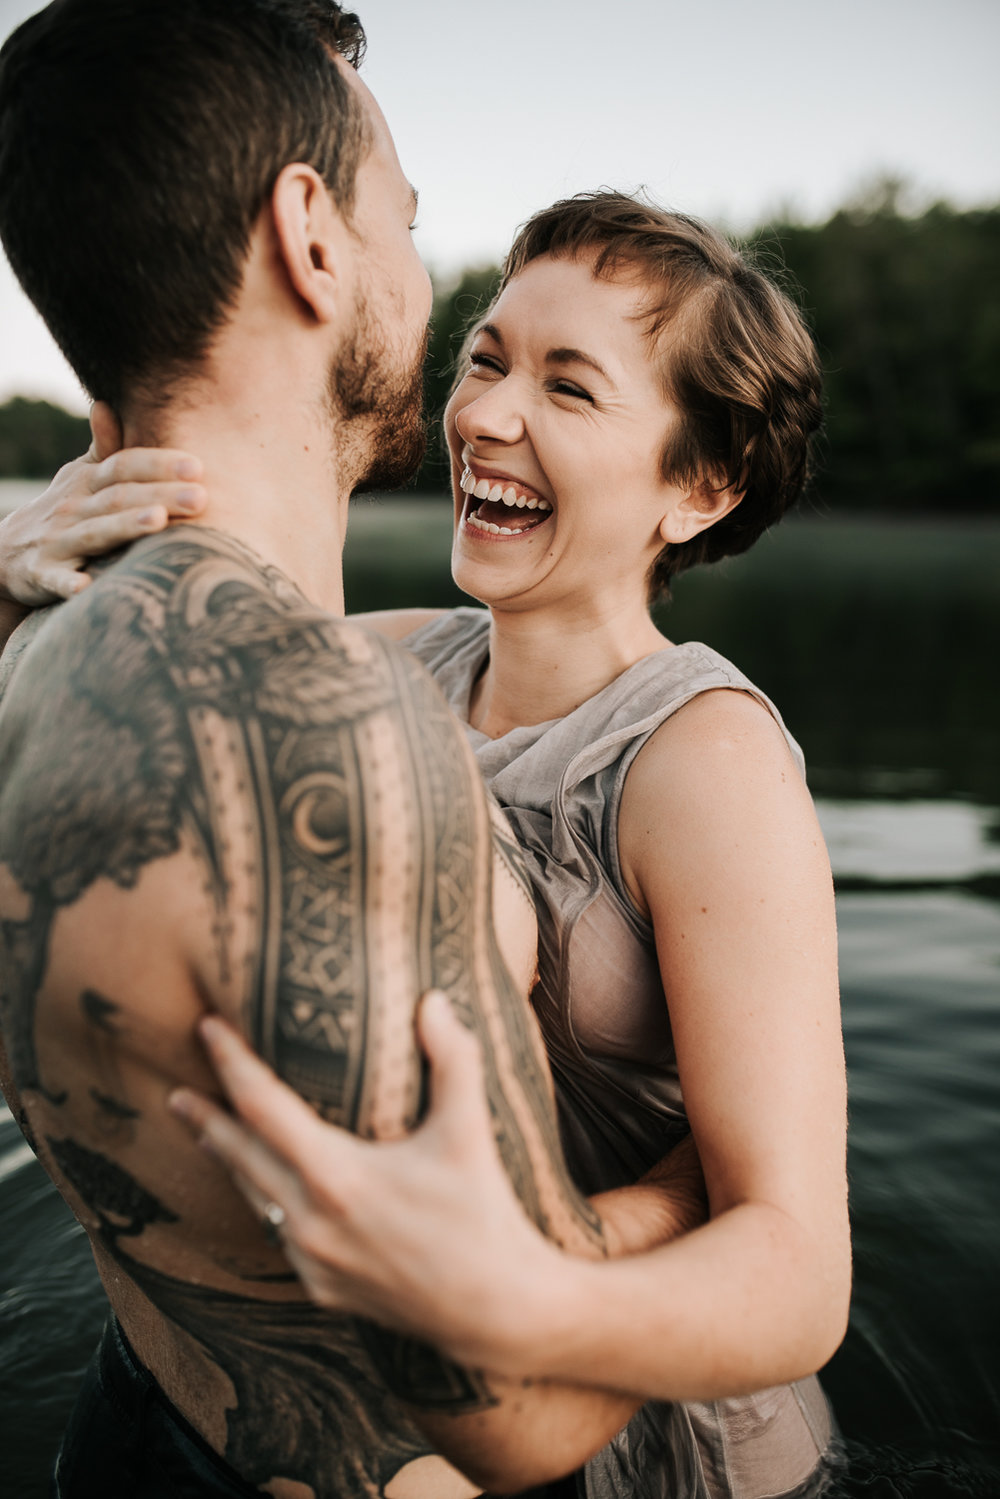 A young woman laughs while holding onto her tattooed husband while standing in water.